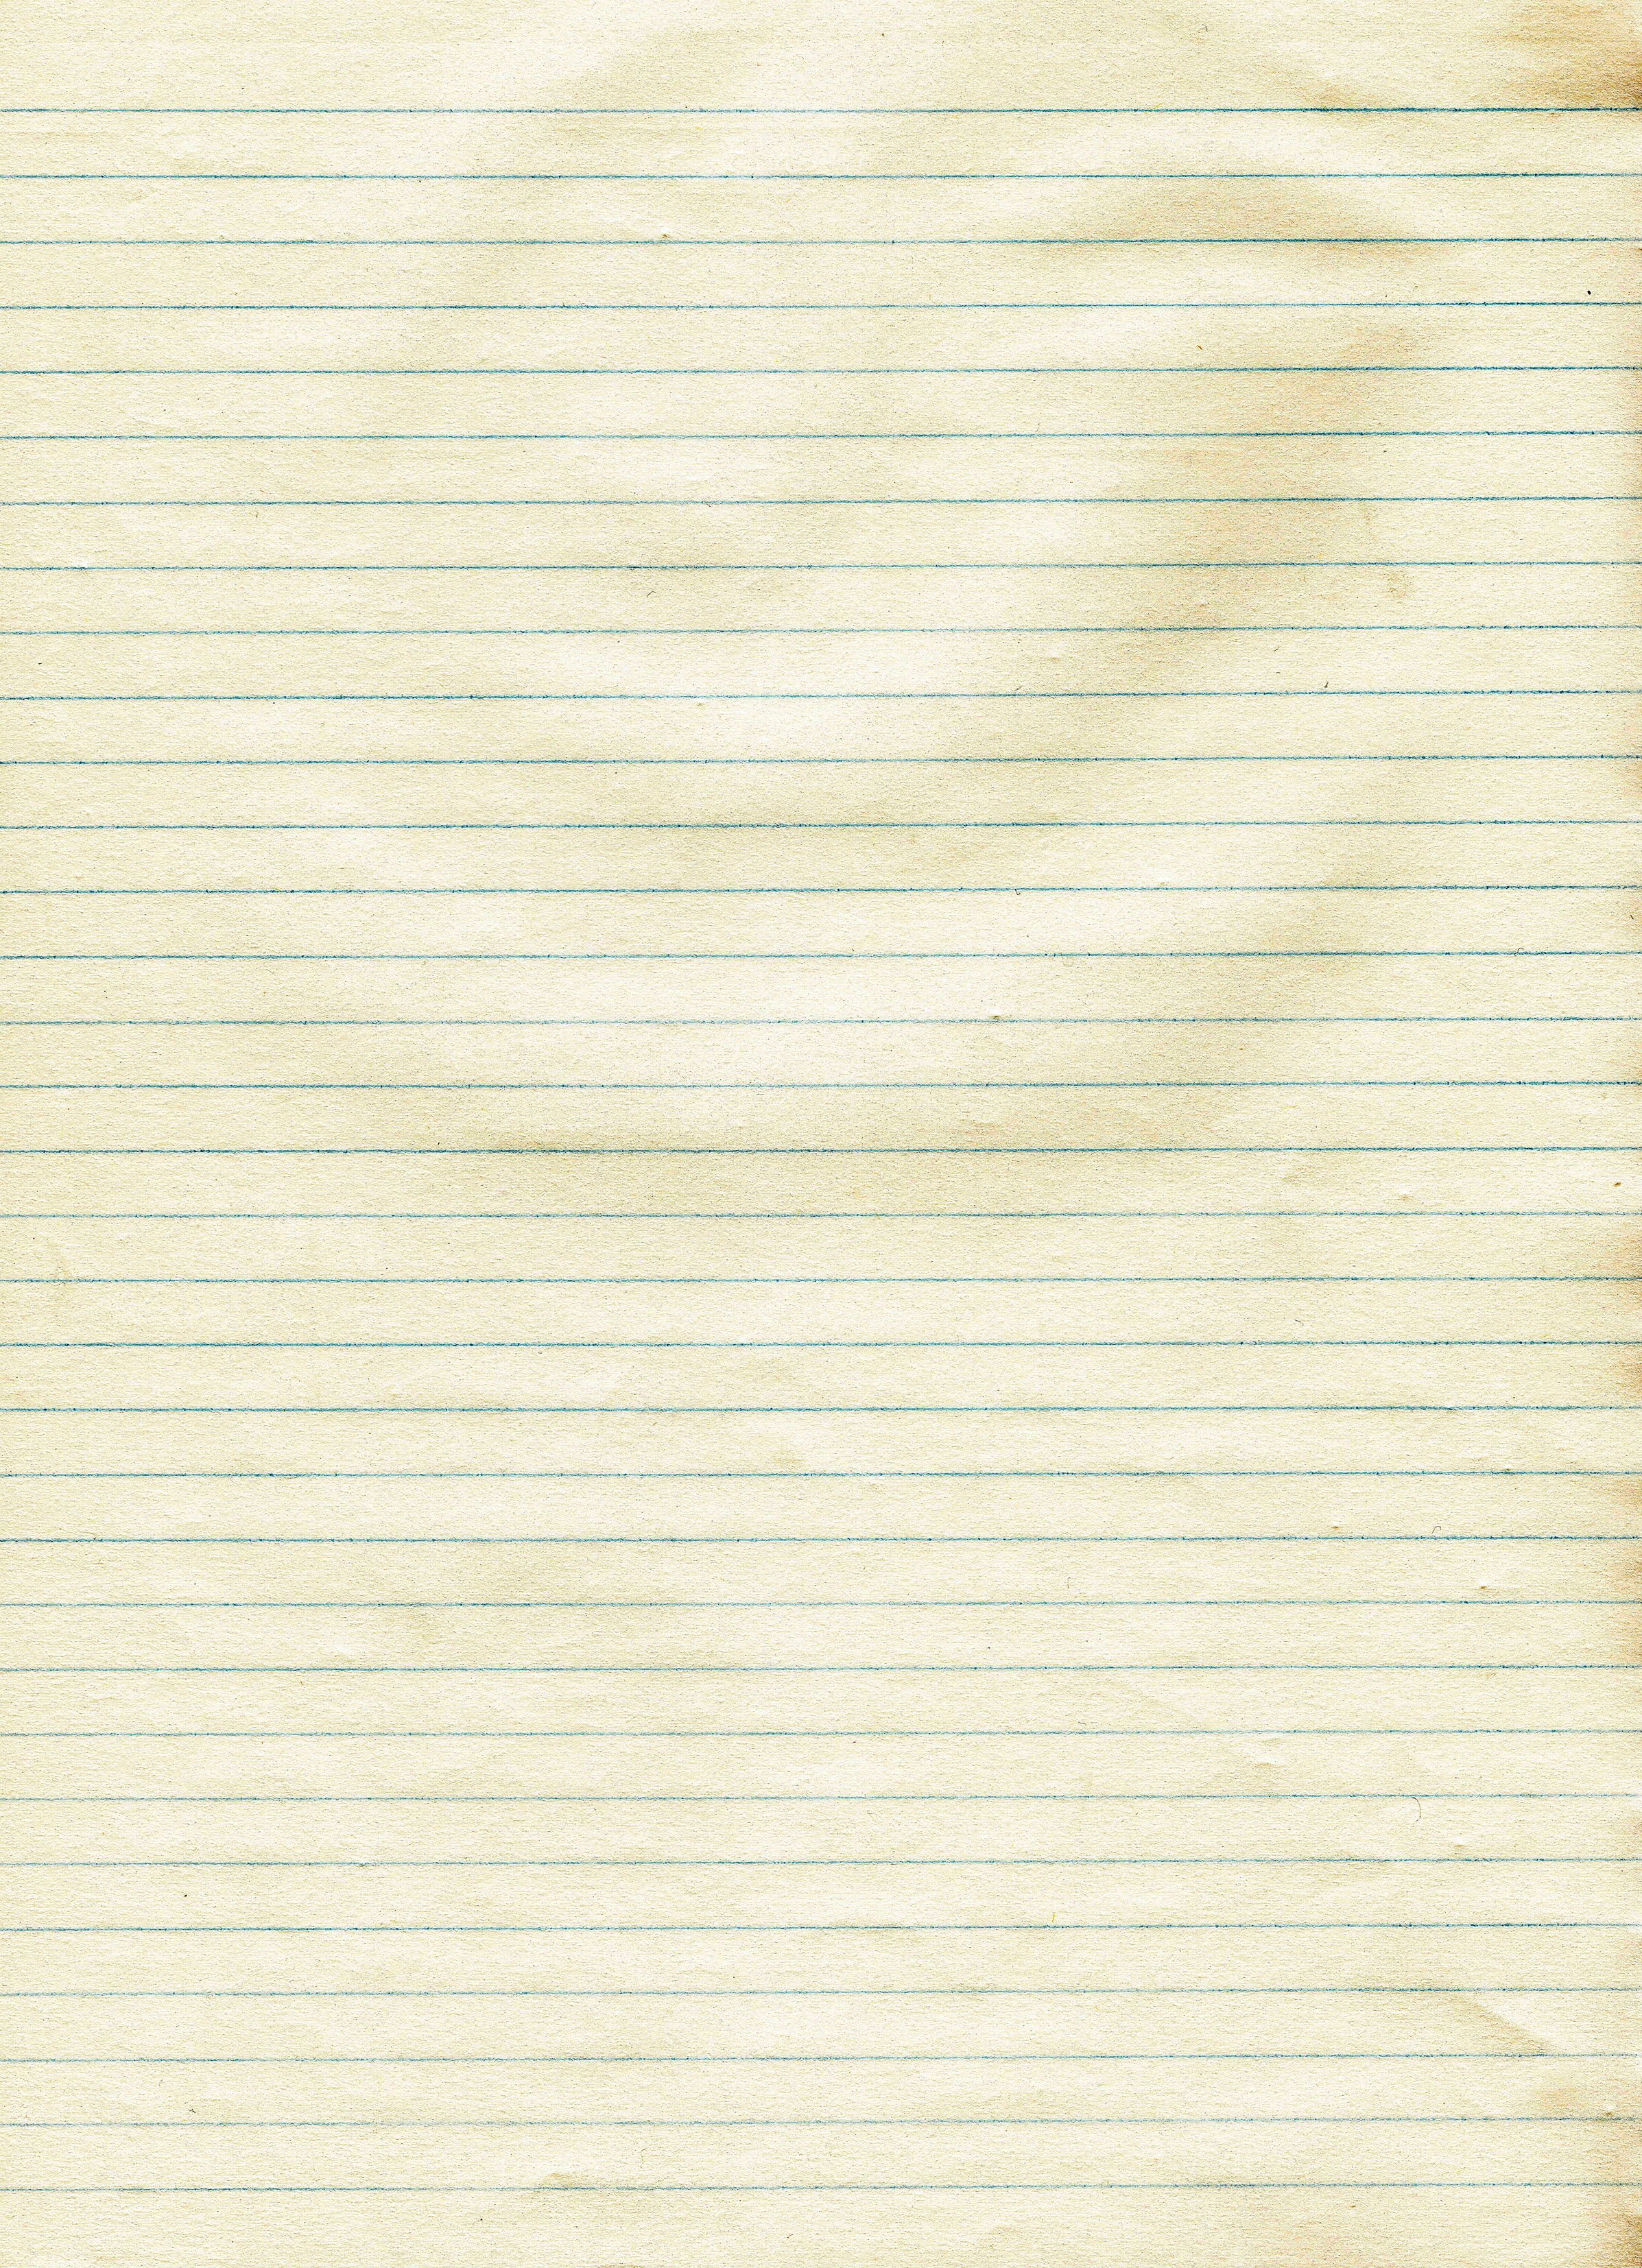 Picture Of Lined Paper Best Of Lined Paper by Ll Stock On Deviantart